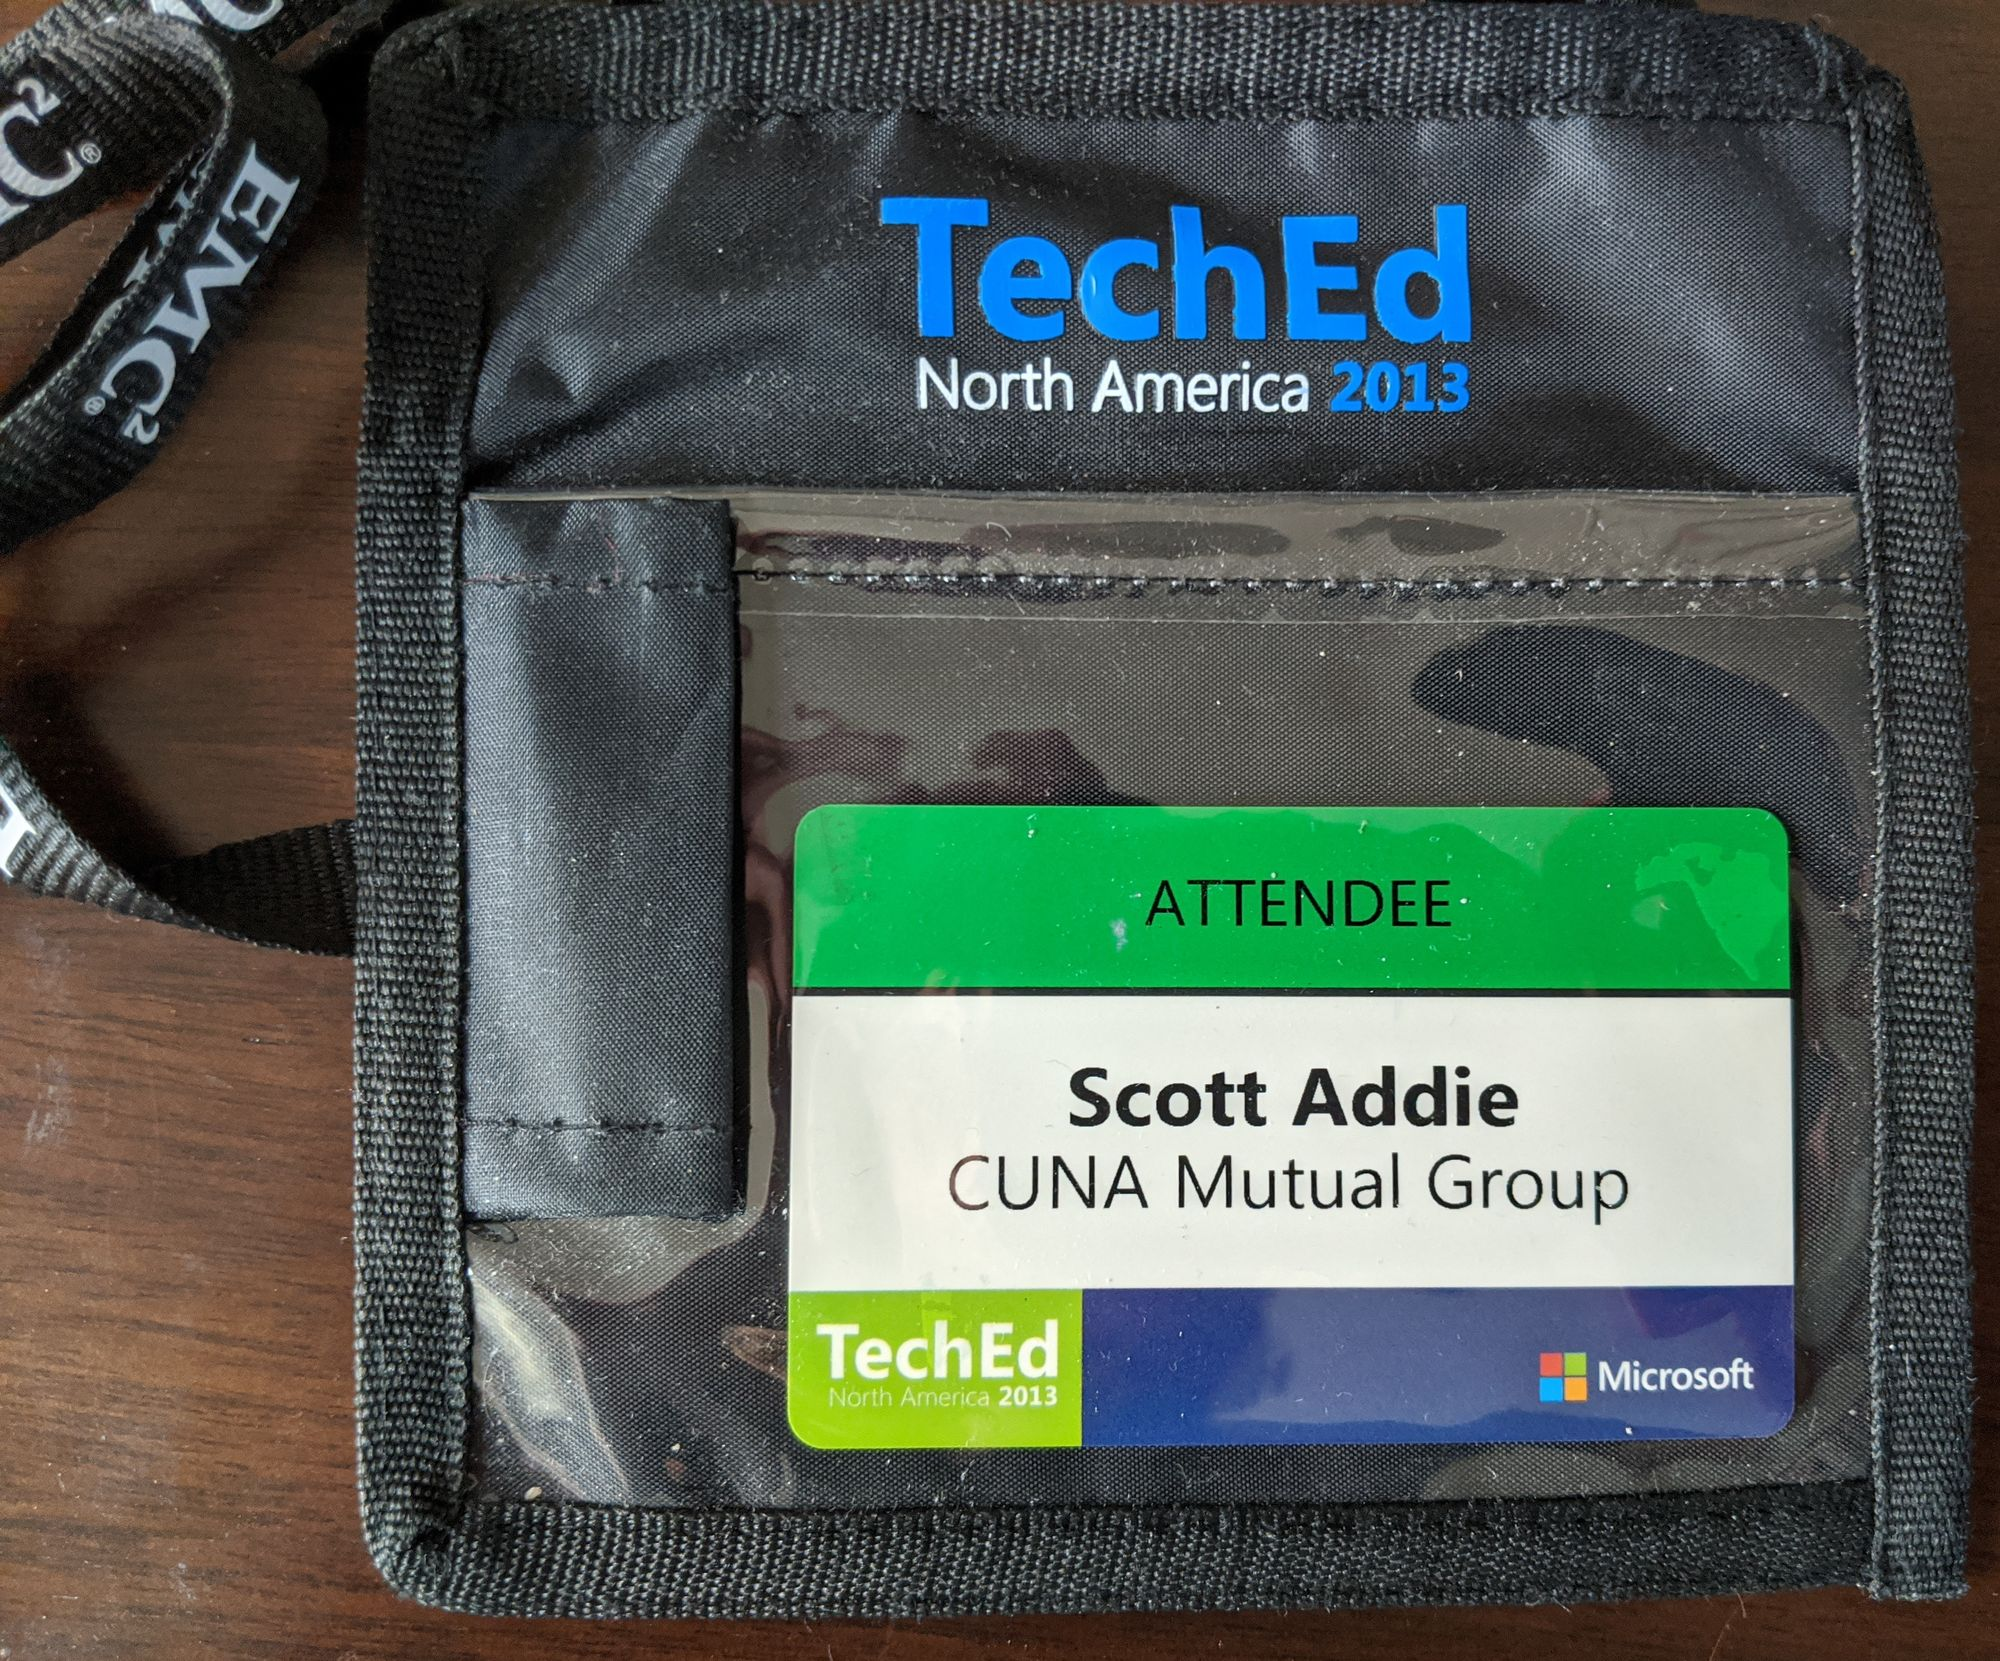 TechEd 2013 badge